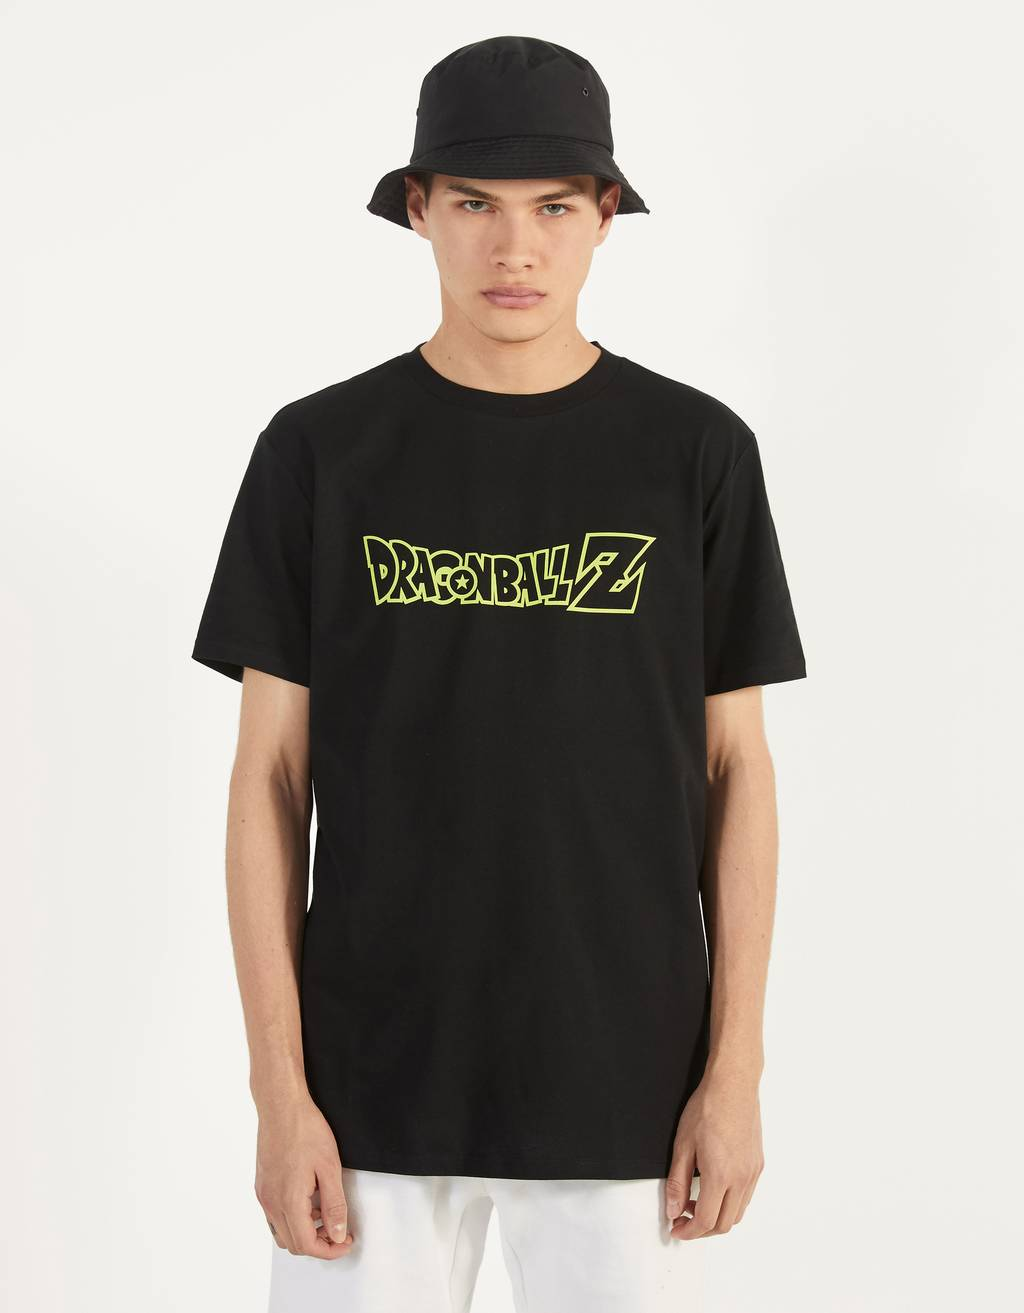 Camiseta Dragon Ball Z x Bershka